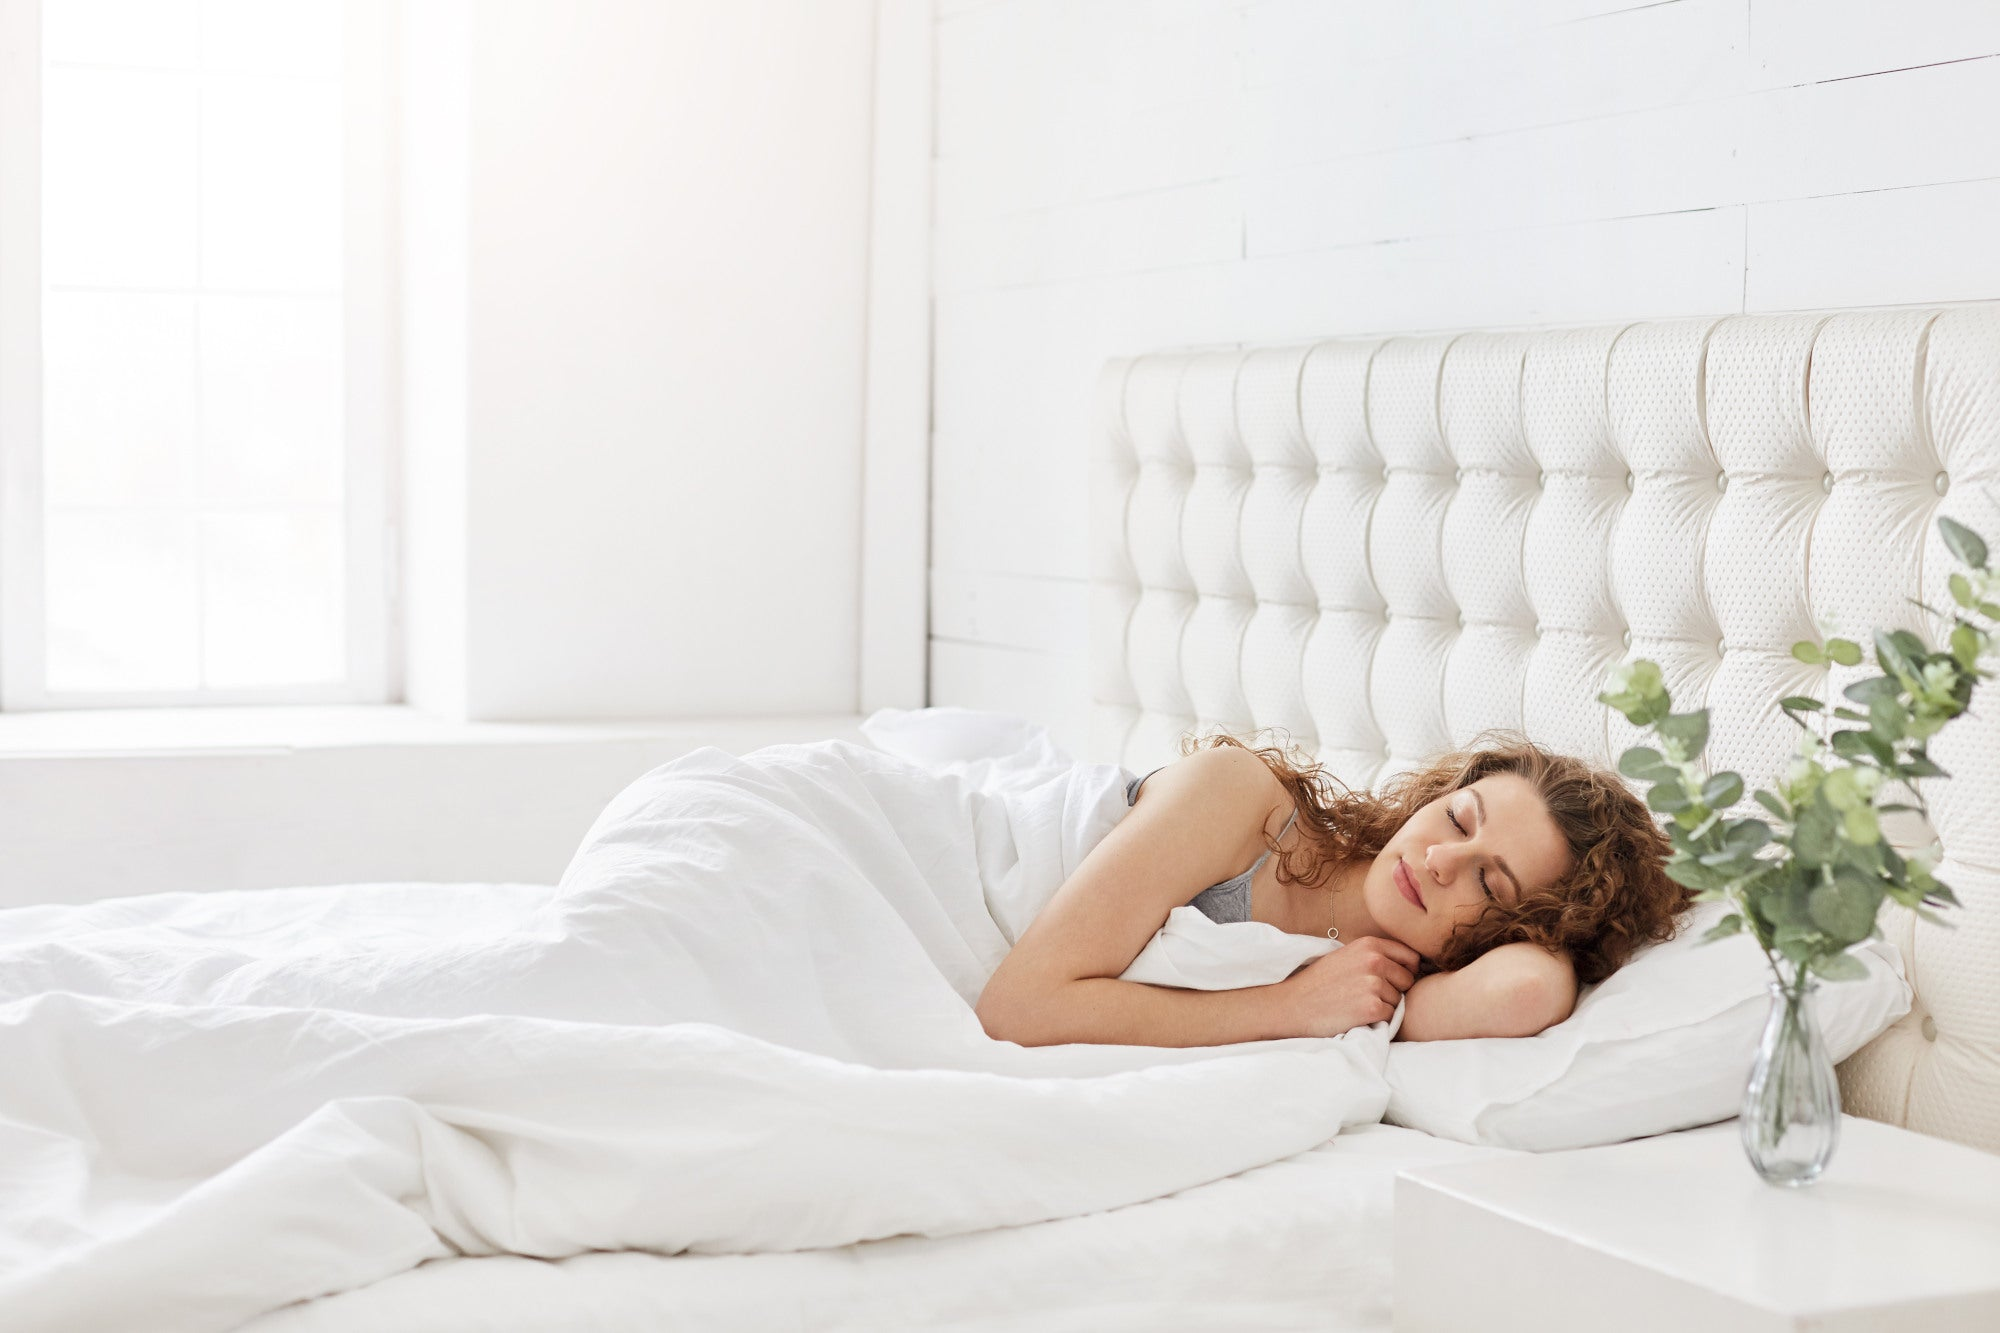 Young woman sleeping on white bed with white sheets